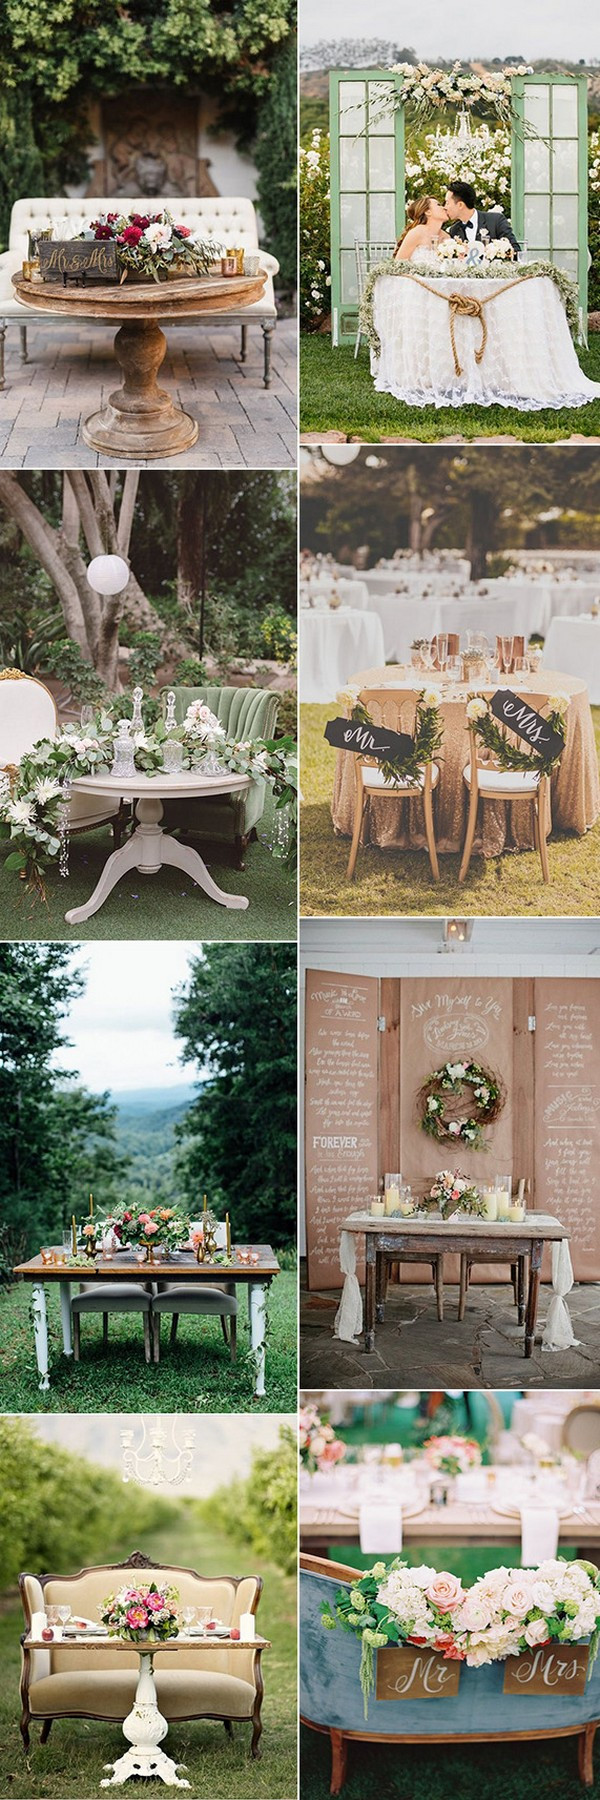 vintage wedding sweetheart table ideas